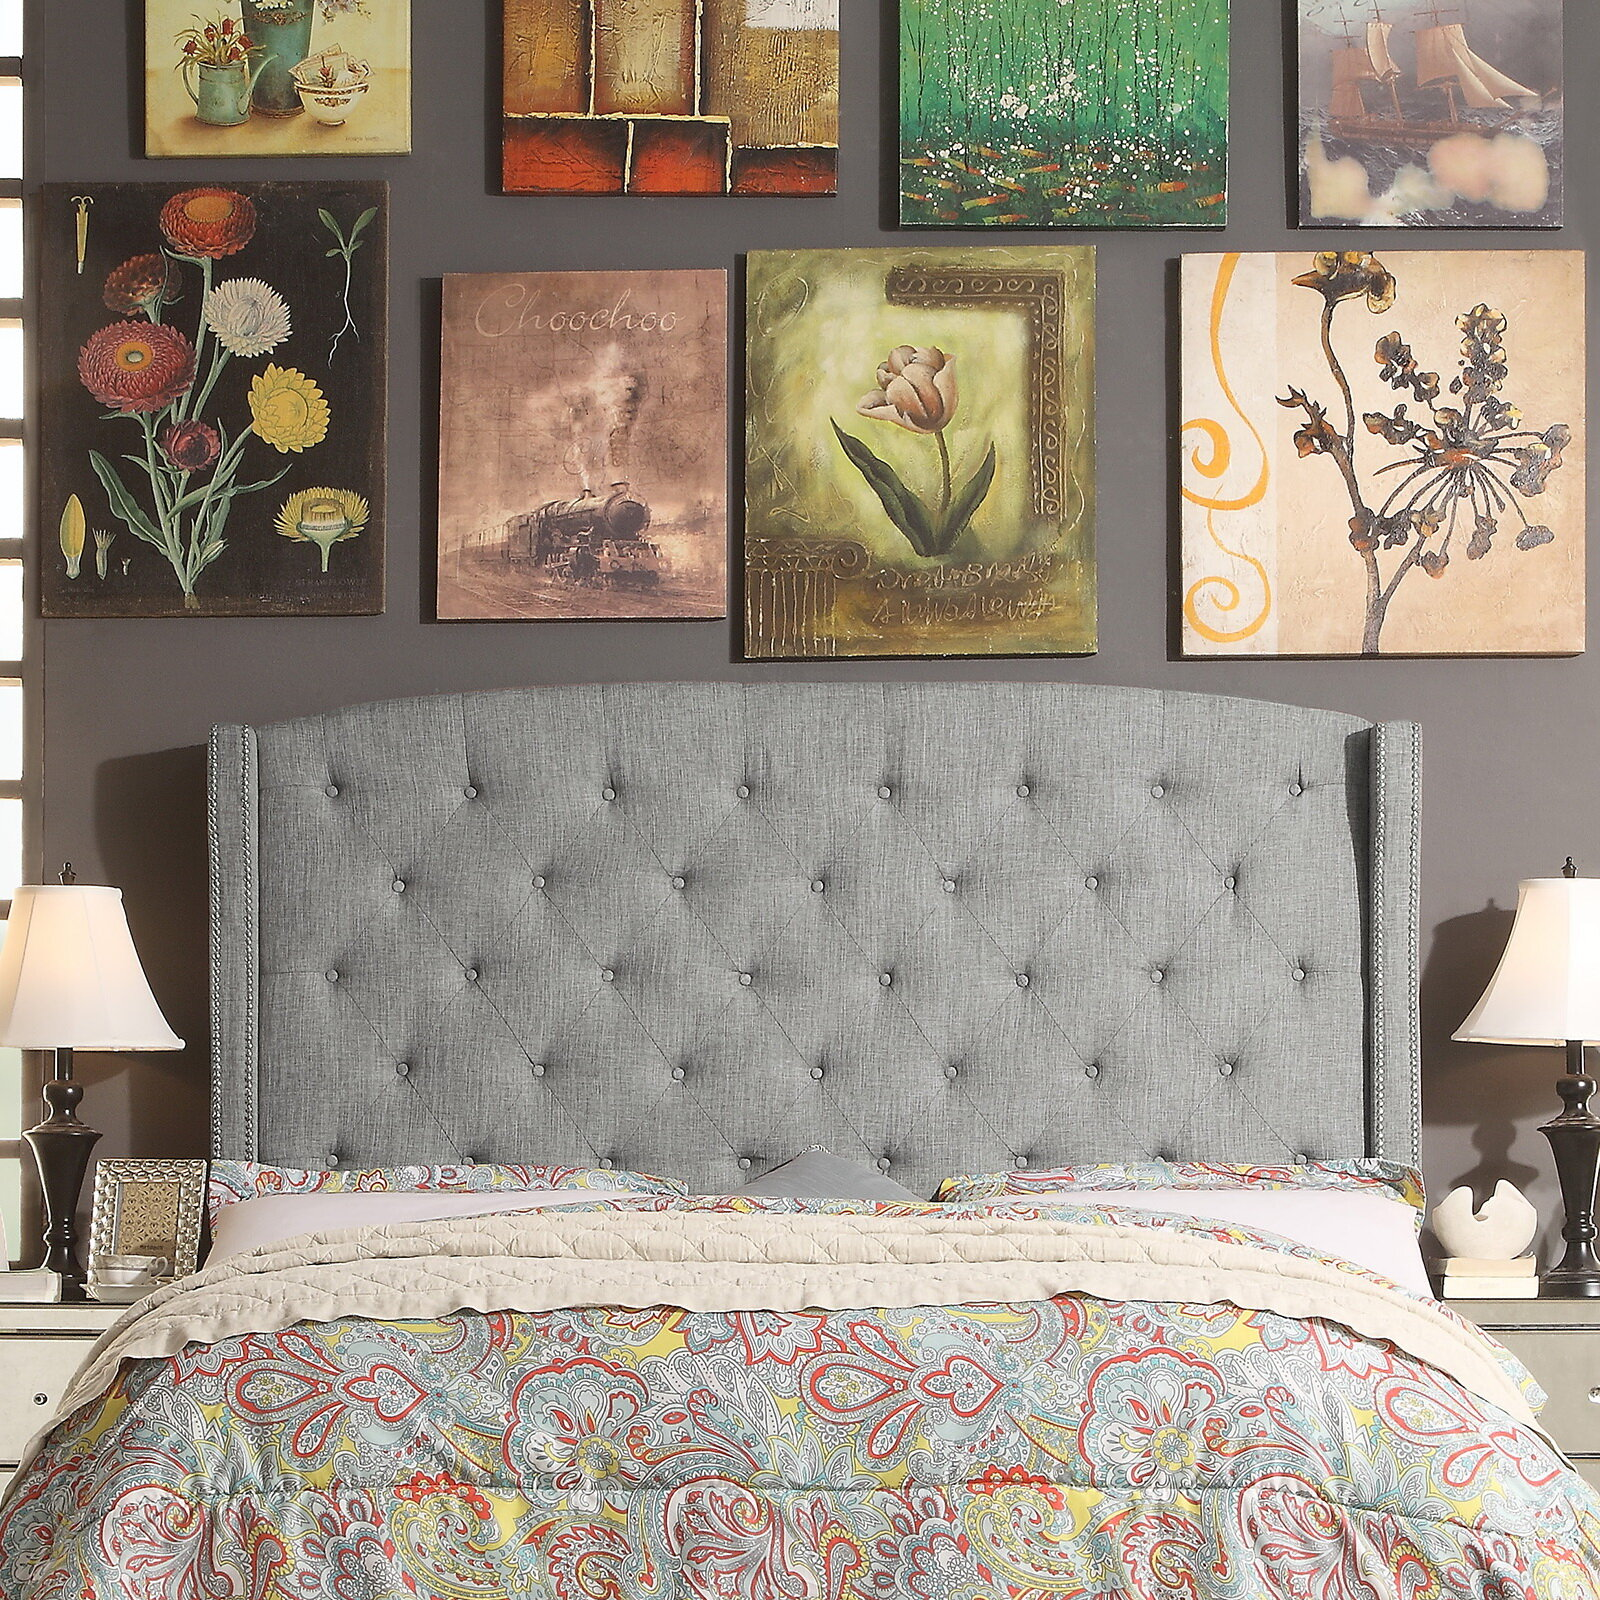 amazon making strawberry anywhere bed few significantly joss ordered things headboards we for main and img frame other else a the headboard back less twin on metal months from than standard swing found